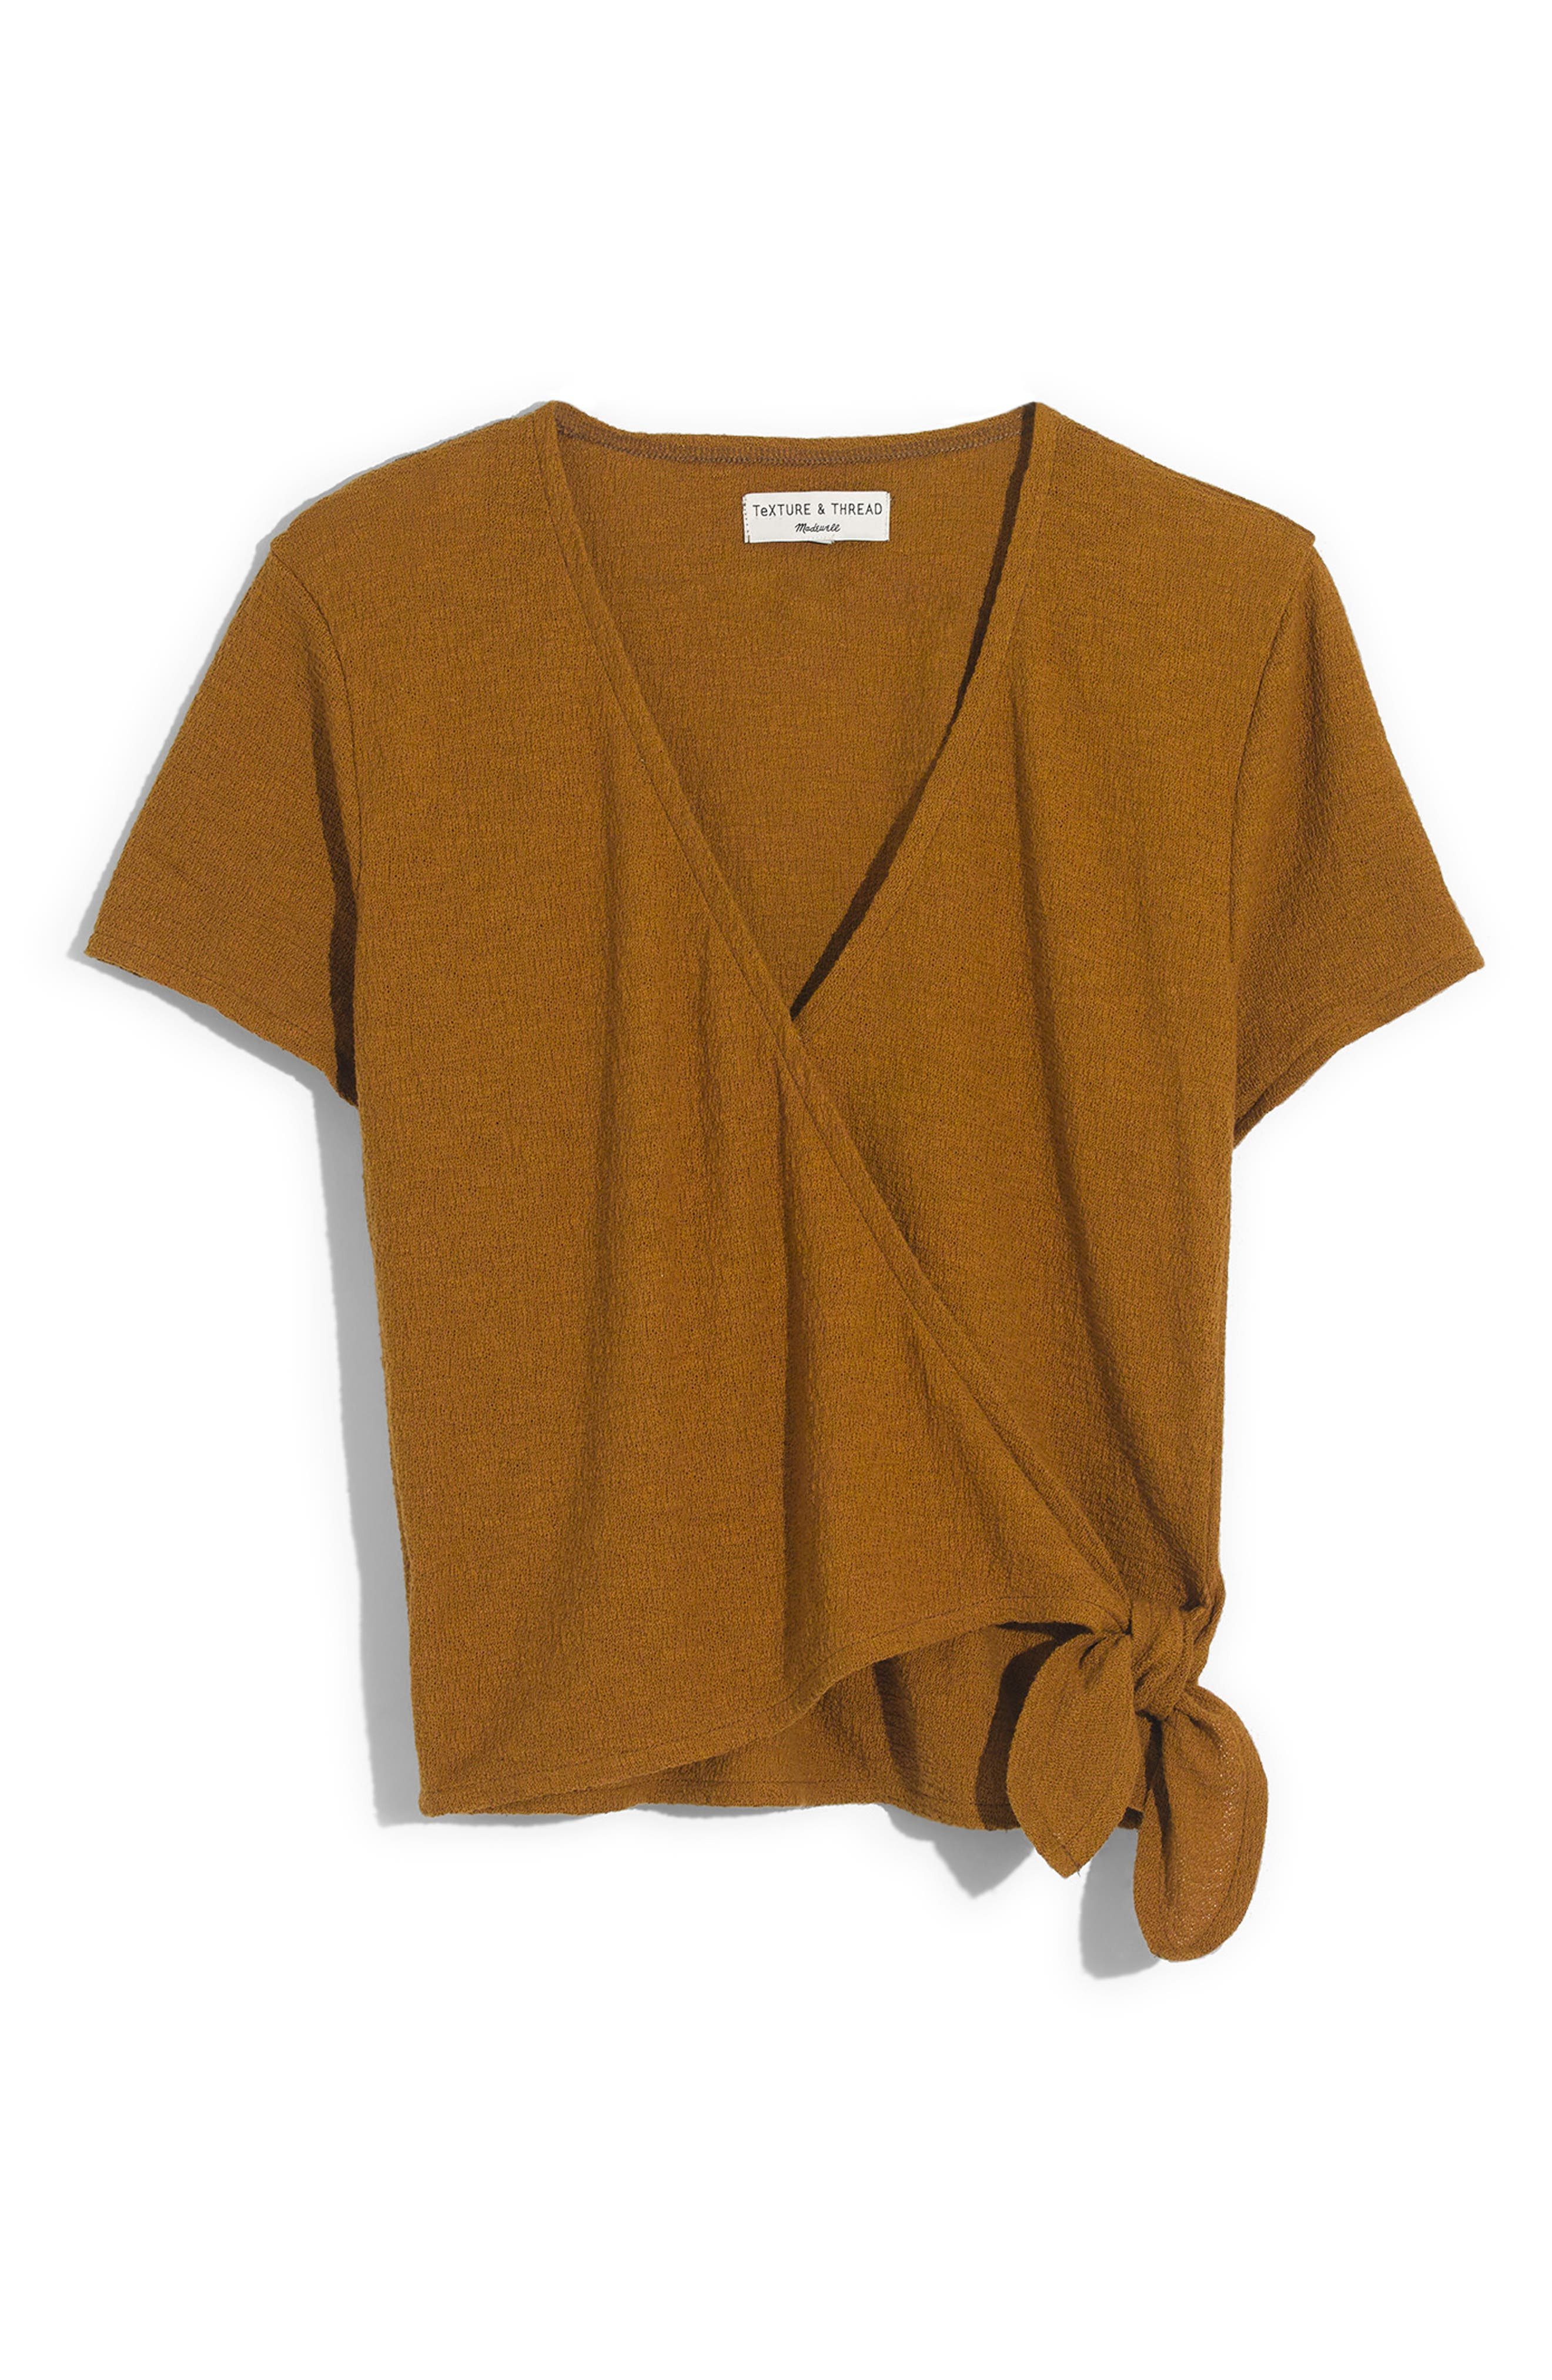 Texture & Thread Wrap Top,                             Alternate thumbnail 6, color,                             300